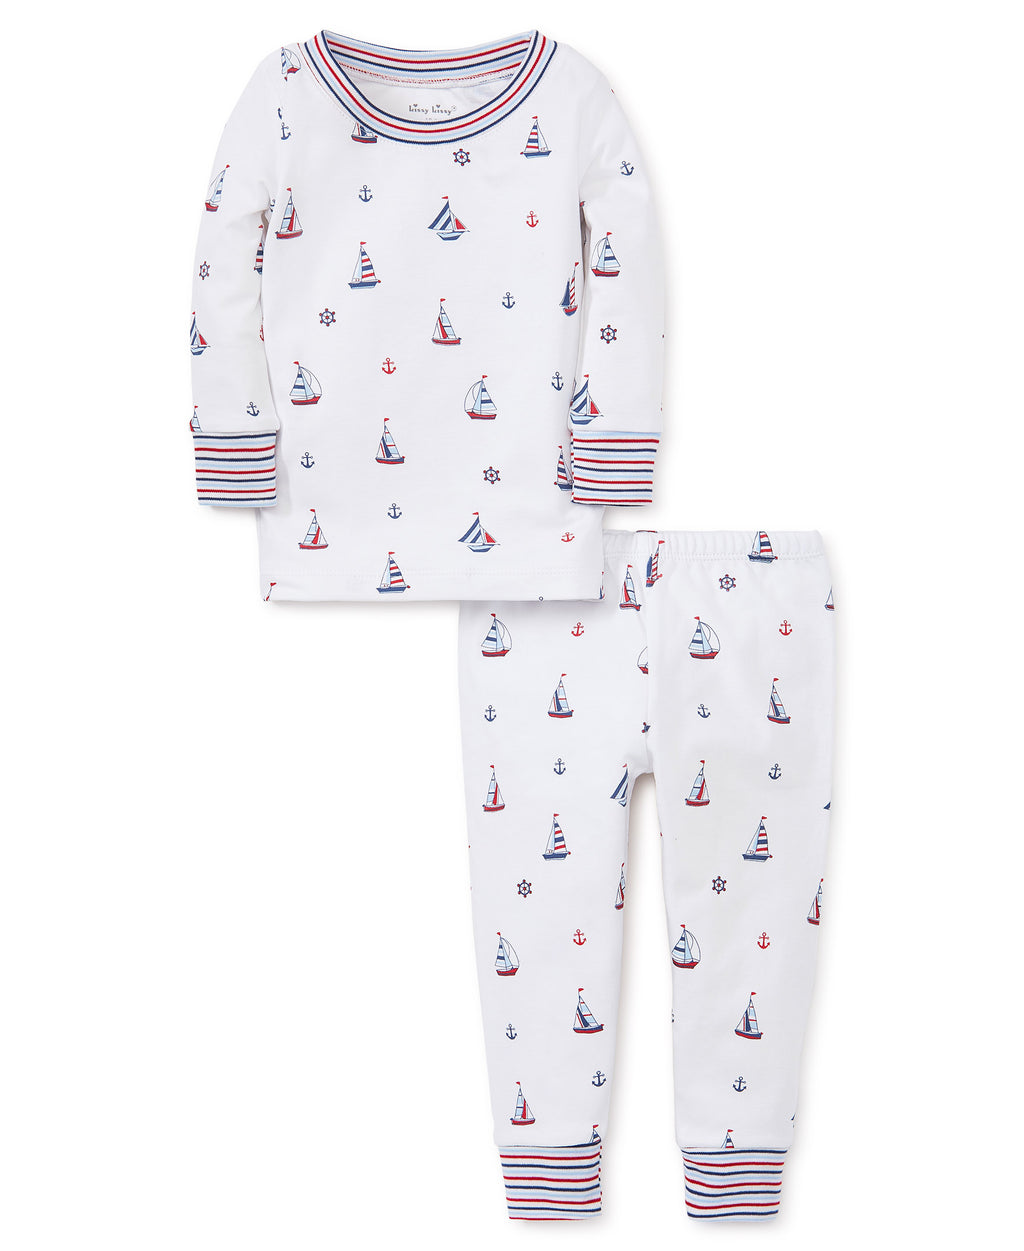 Sails Pajama Set